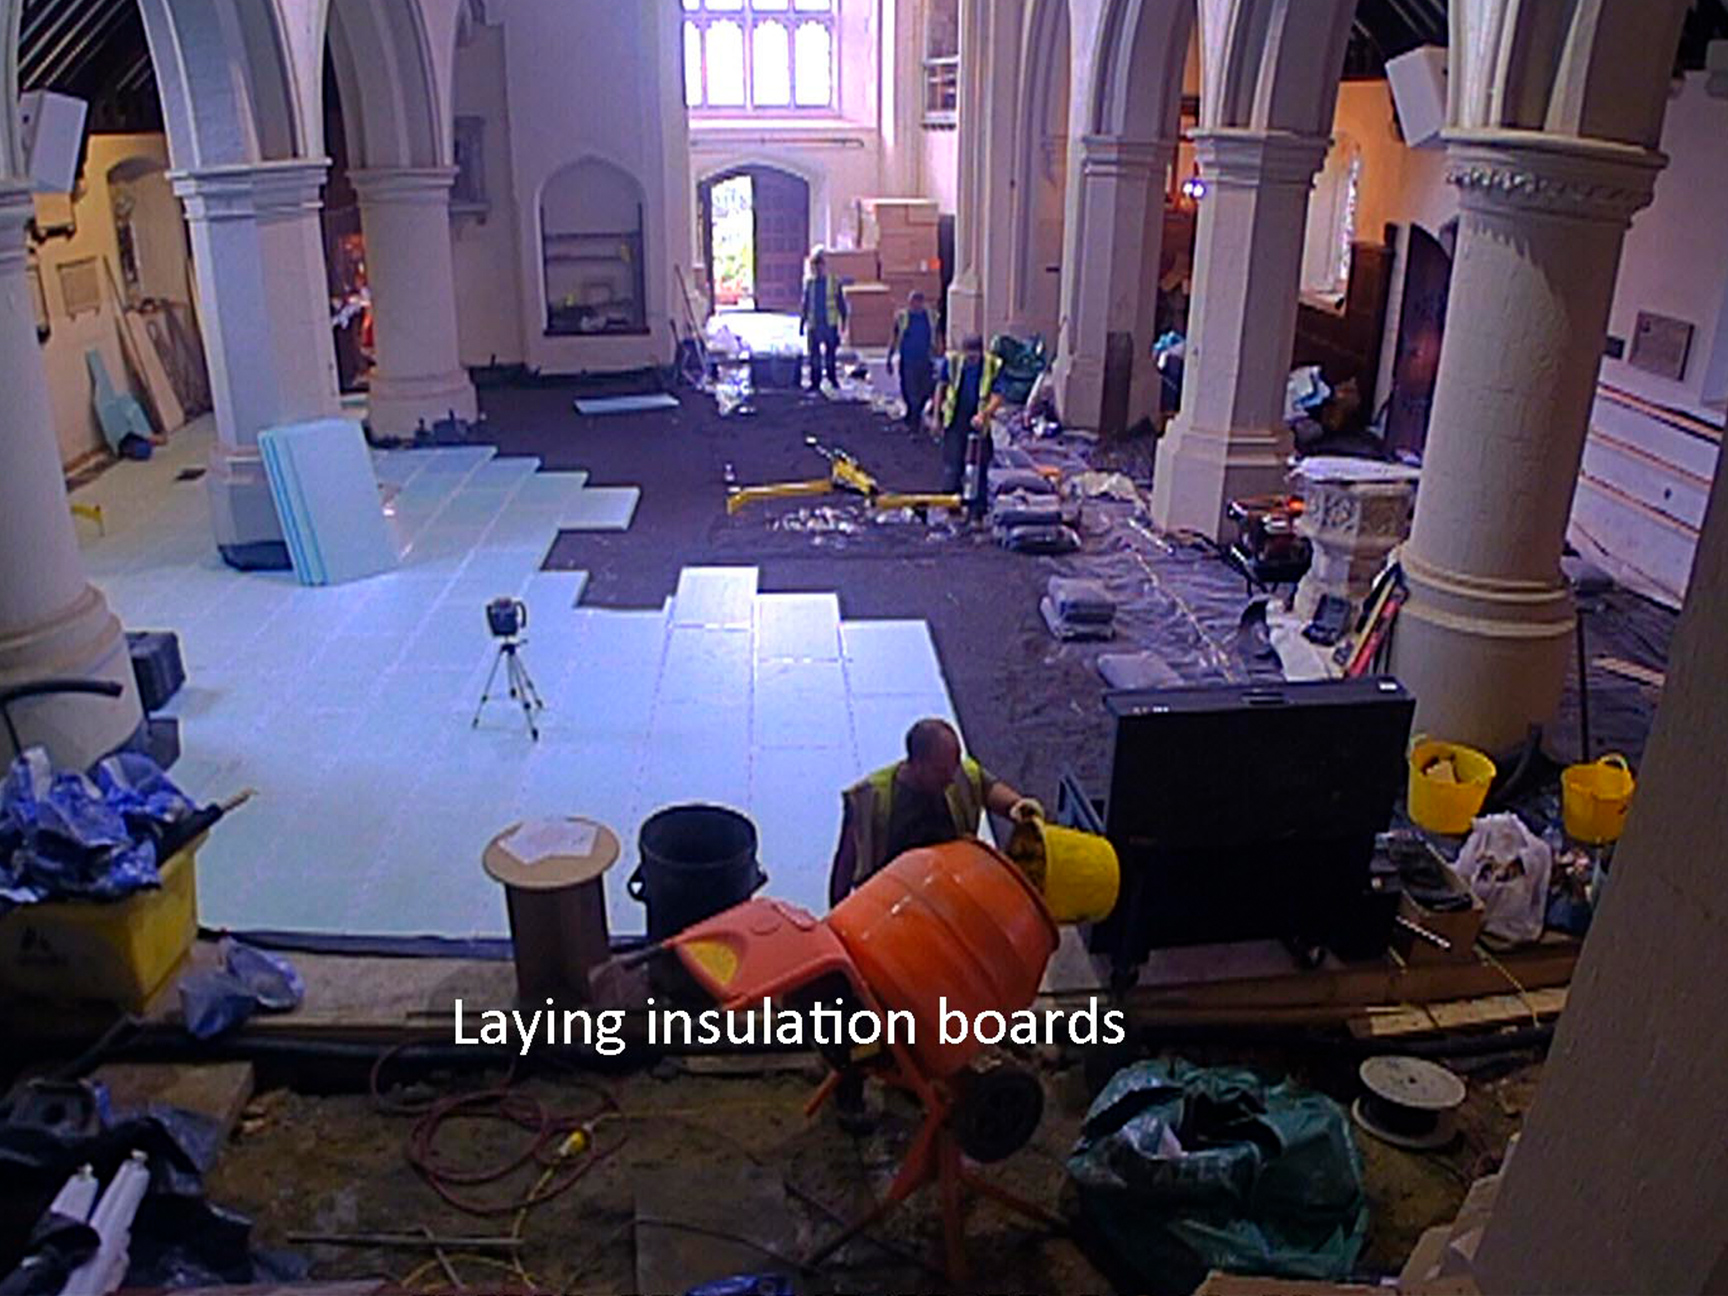 MHTL5-Laying-Insulation-Boards